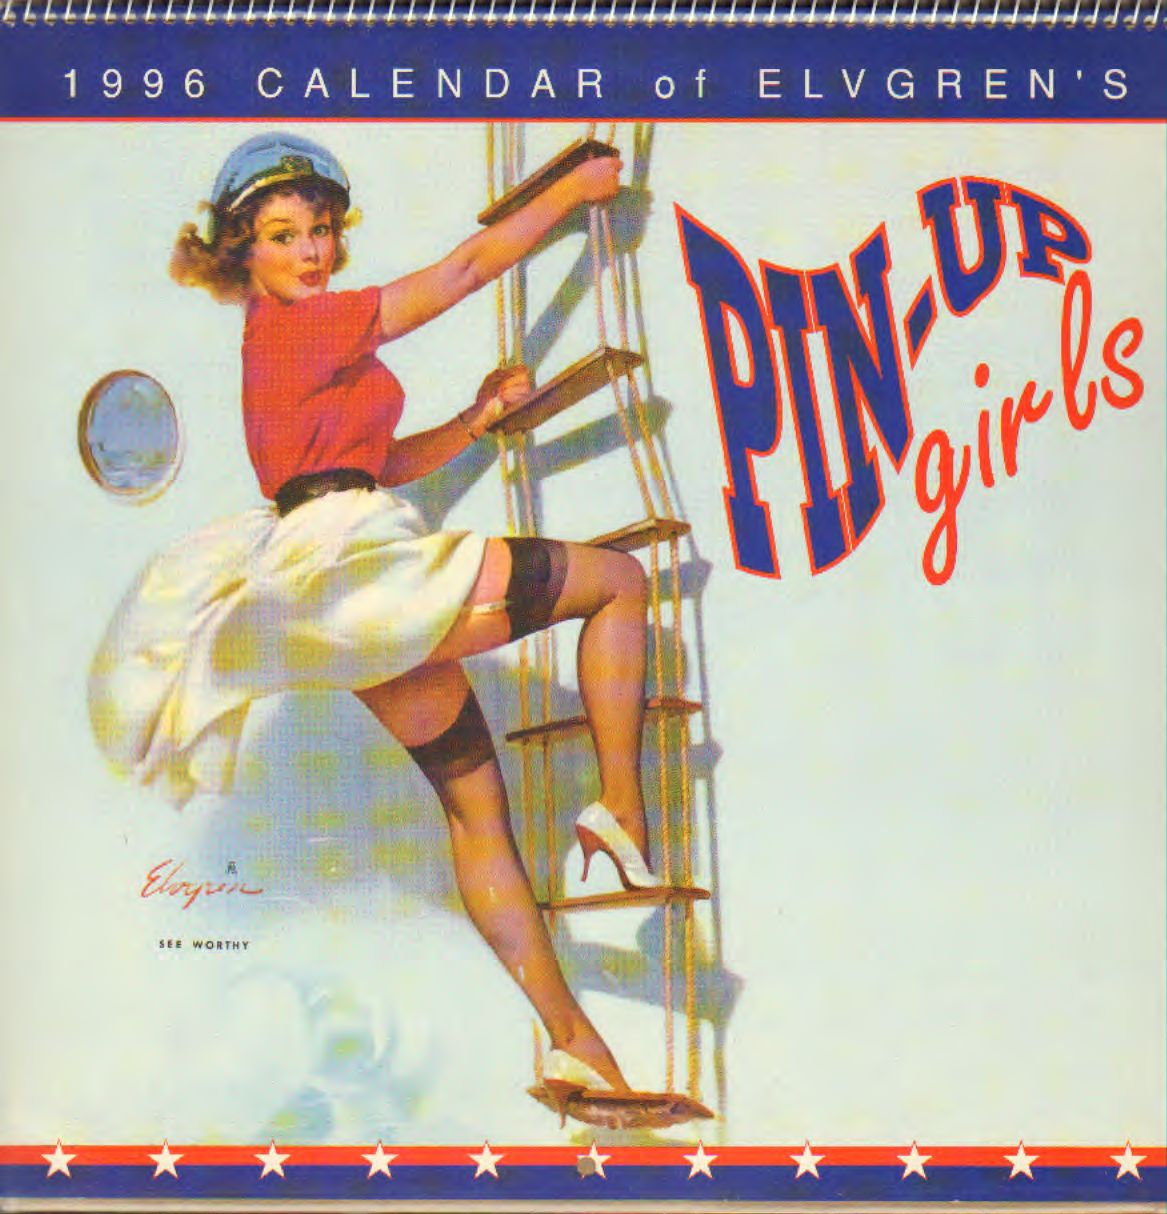 Elvgren - Pin-Up Girls Calendar 1996